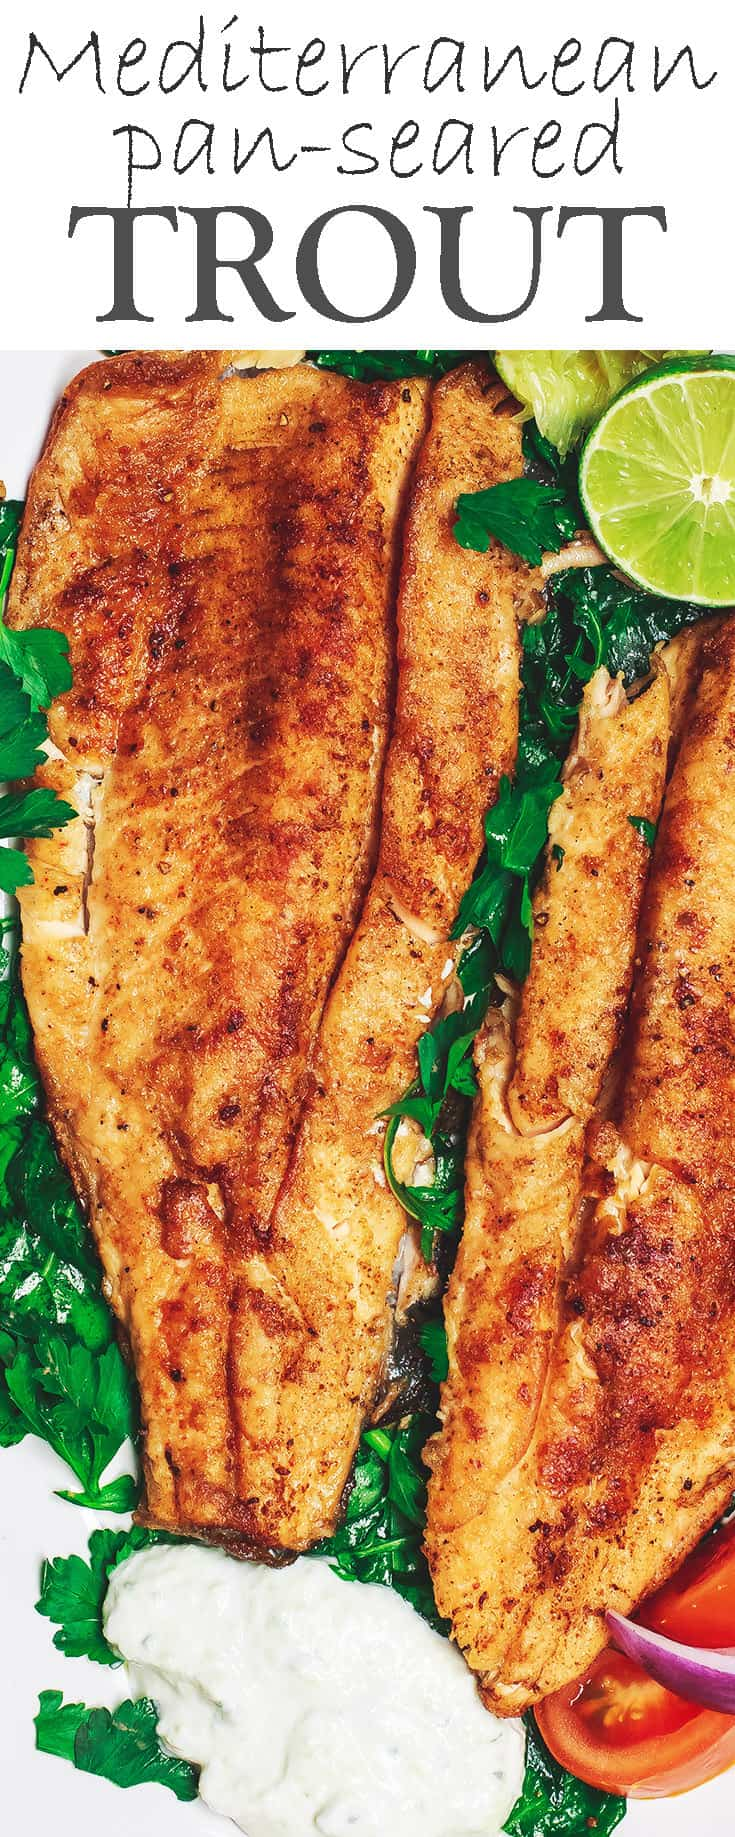 Easy Pan Seared Trout Recipe The Mediterranean Dish